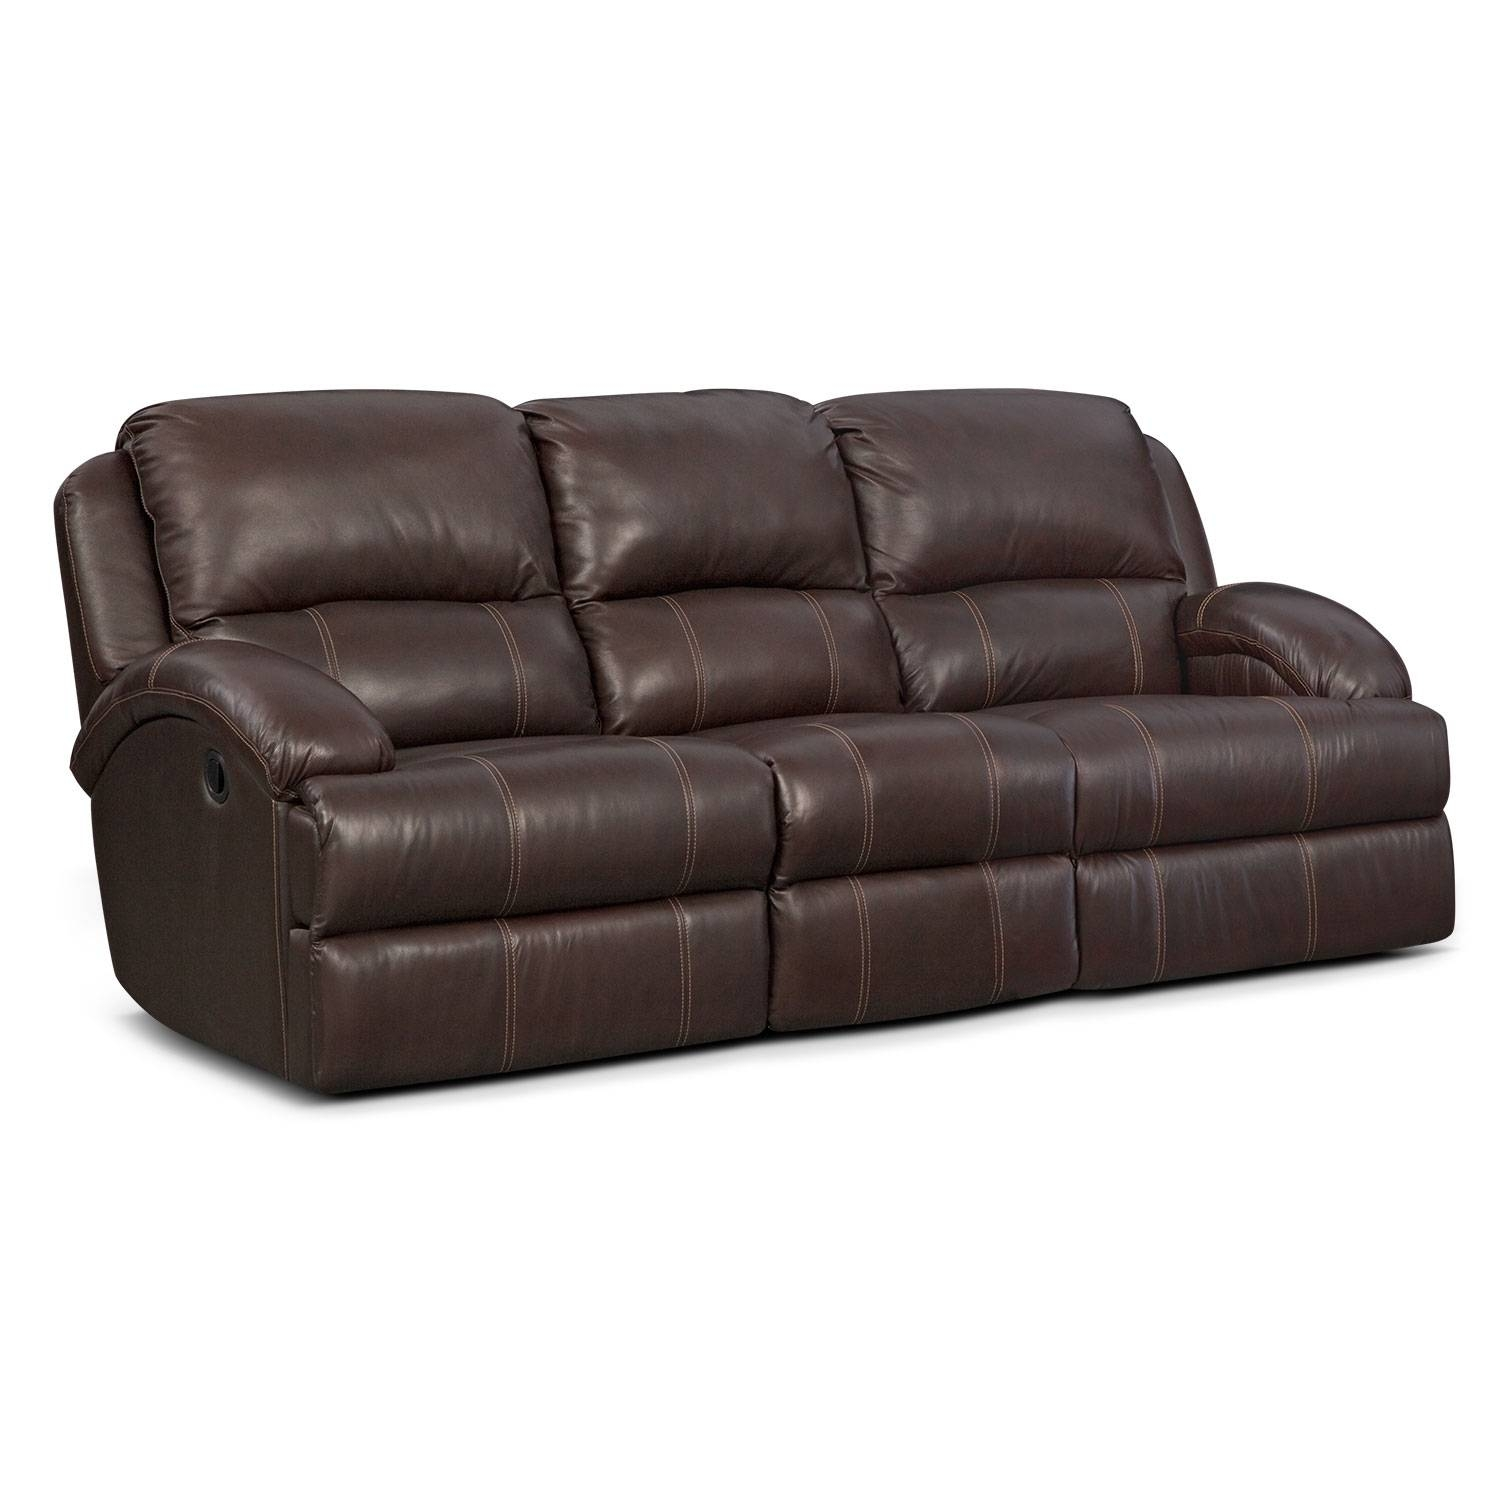 Nolan Dual Reclining Sofa - Chocolate | American Signature Furniture with Recliner Sofa Chairs (Image 25 of 30)